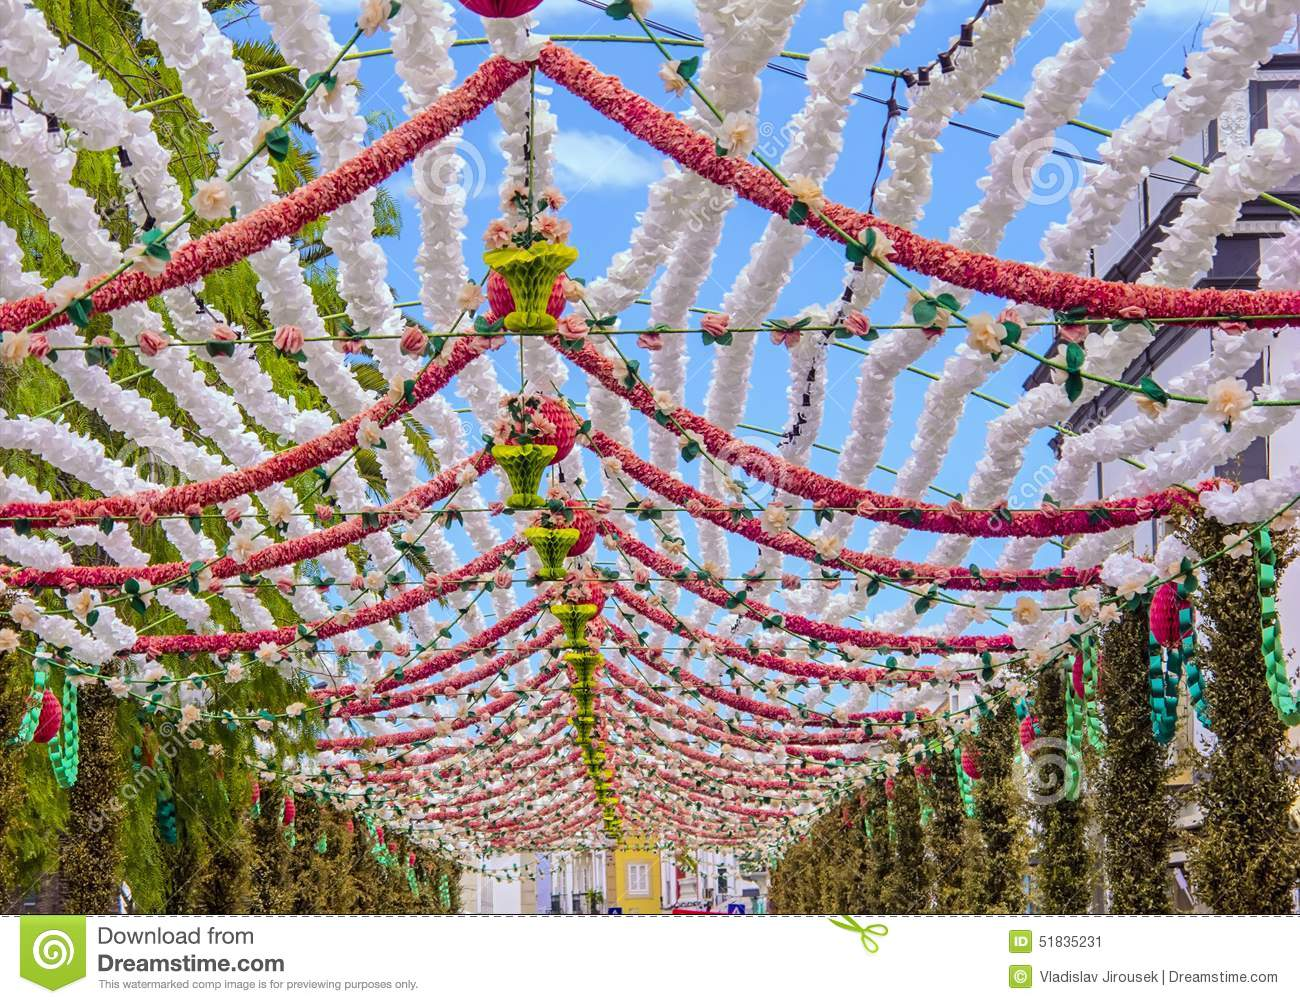 Flower Decoration In Portugal Stock Image   Image of decorate